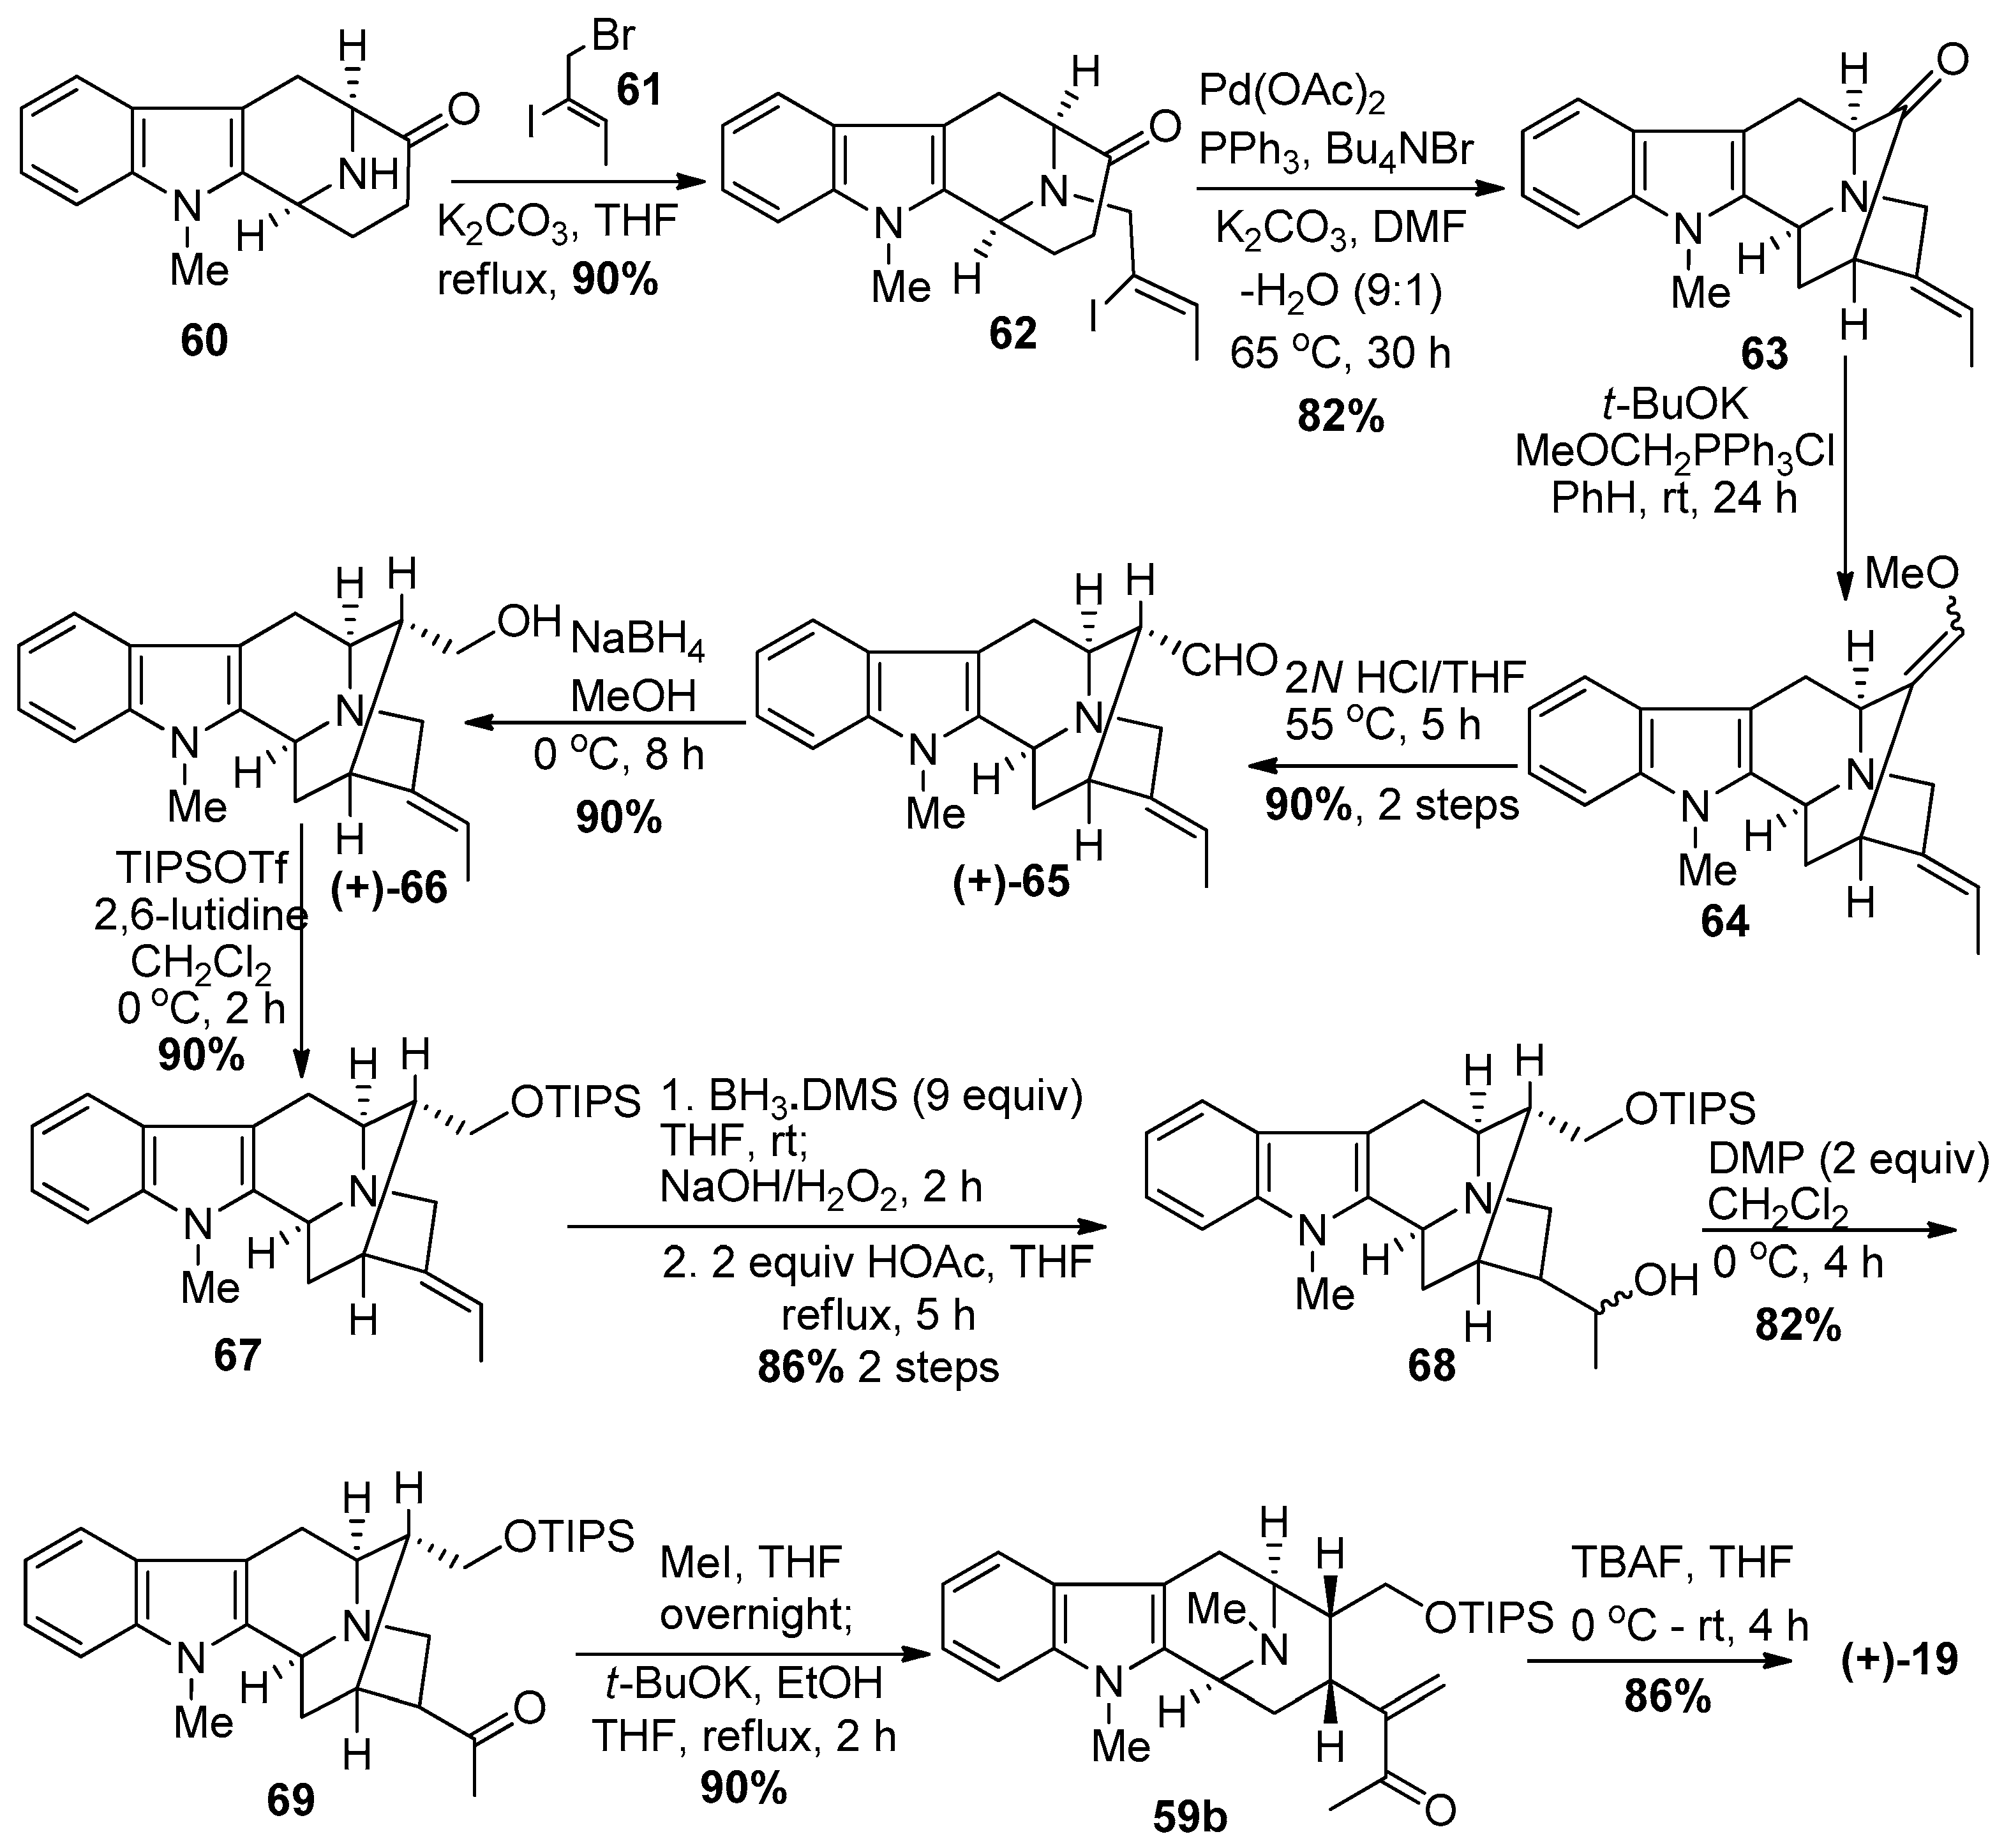 Molecules 21 01525 sch005